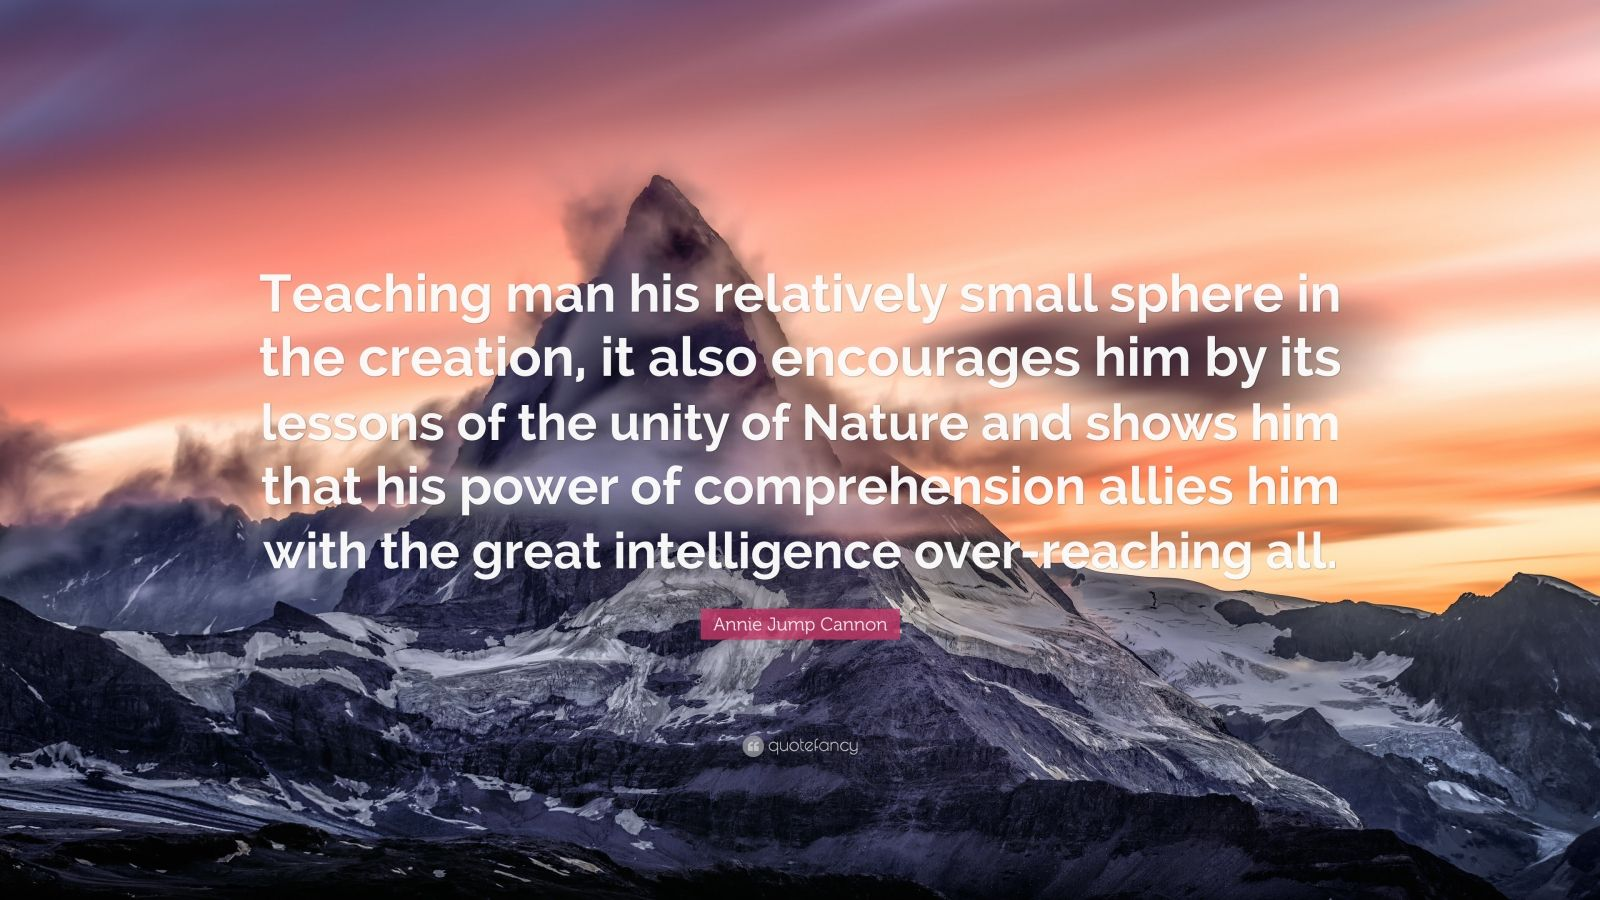 """Annie Jump Cannon Quote: """"Teaching man his relatively small sphere in the creation, it also encourages him by its lessons of the unity of Nature and shows him that his power of comprehension allies him with the great intelligence over-reaching all."""""""